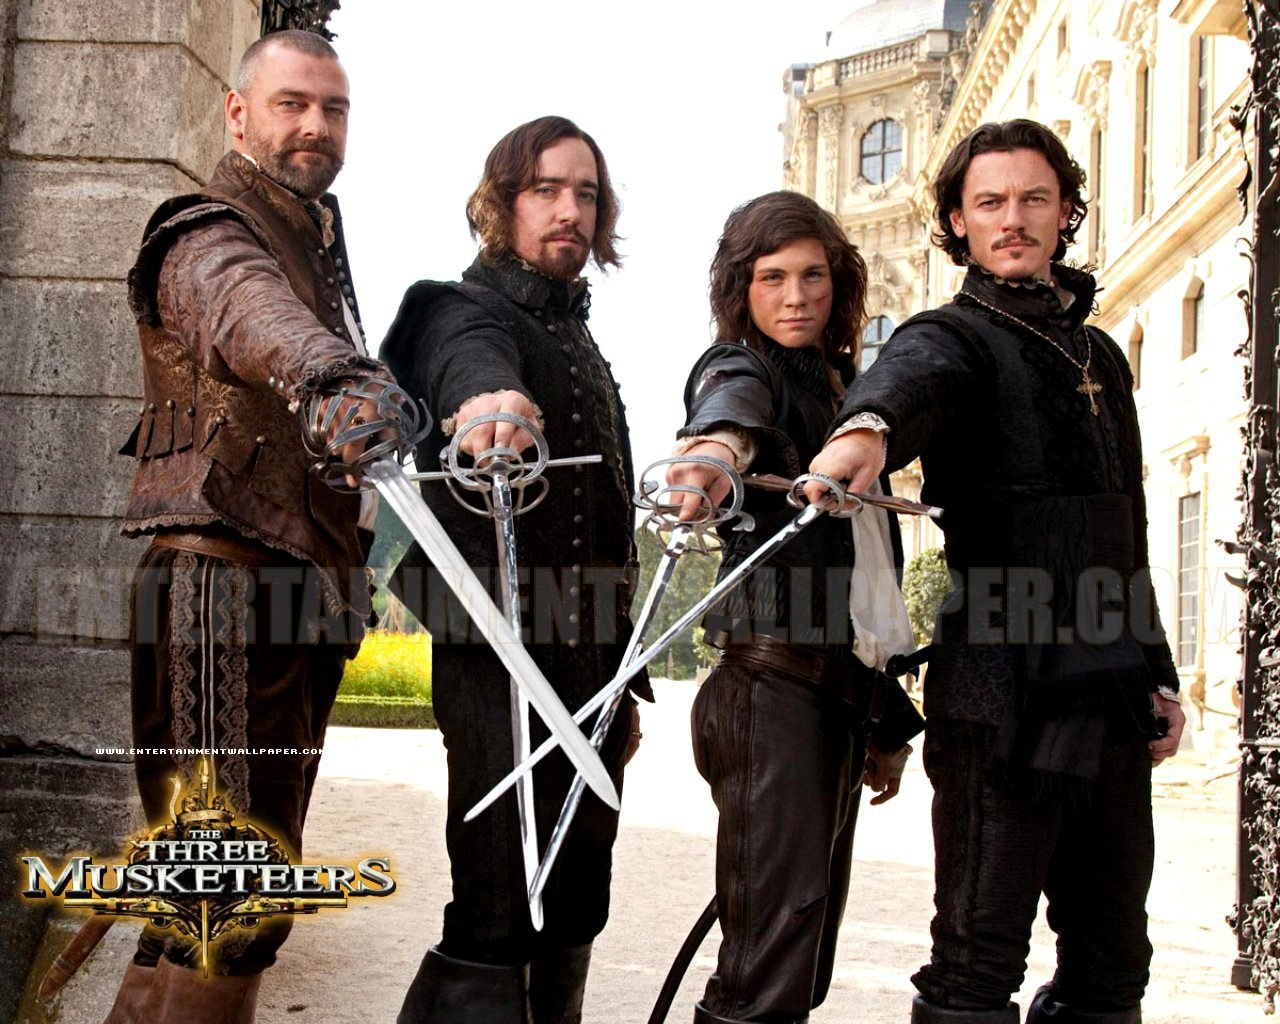 Download Film Three Musketeers 2011